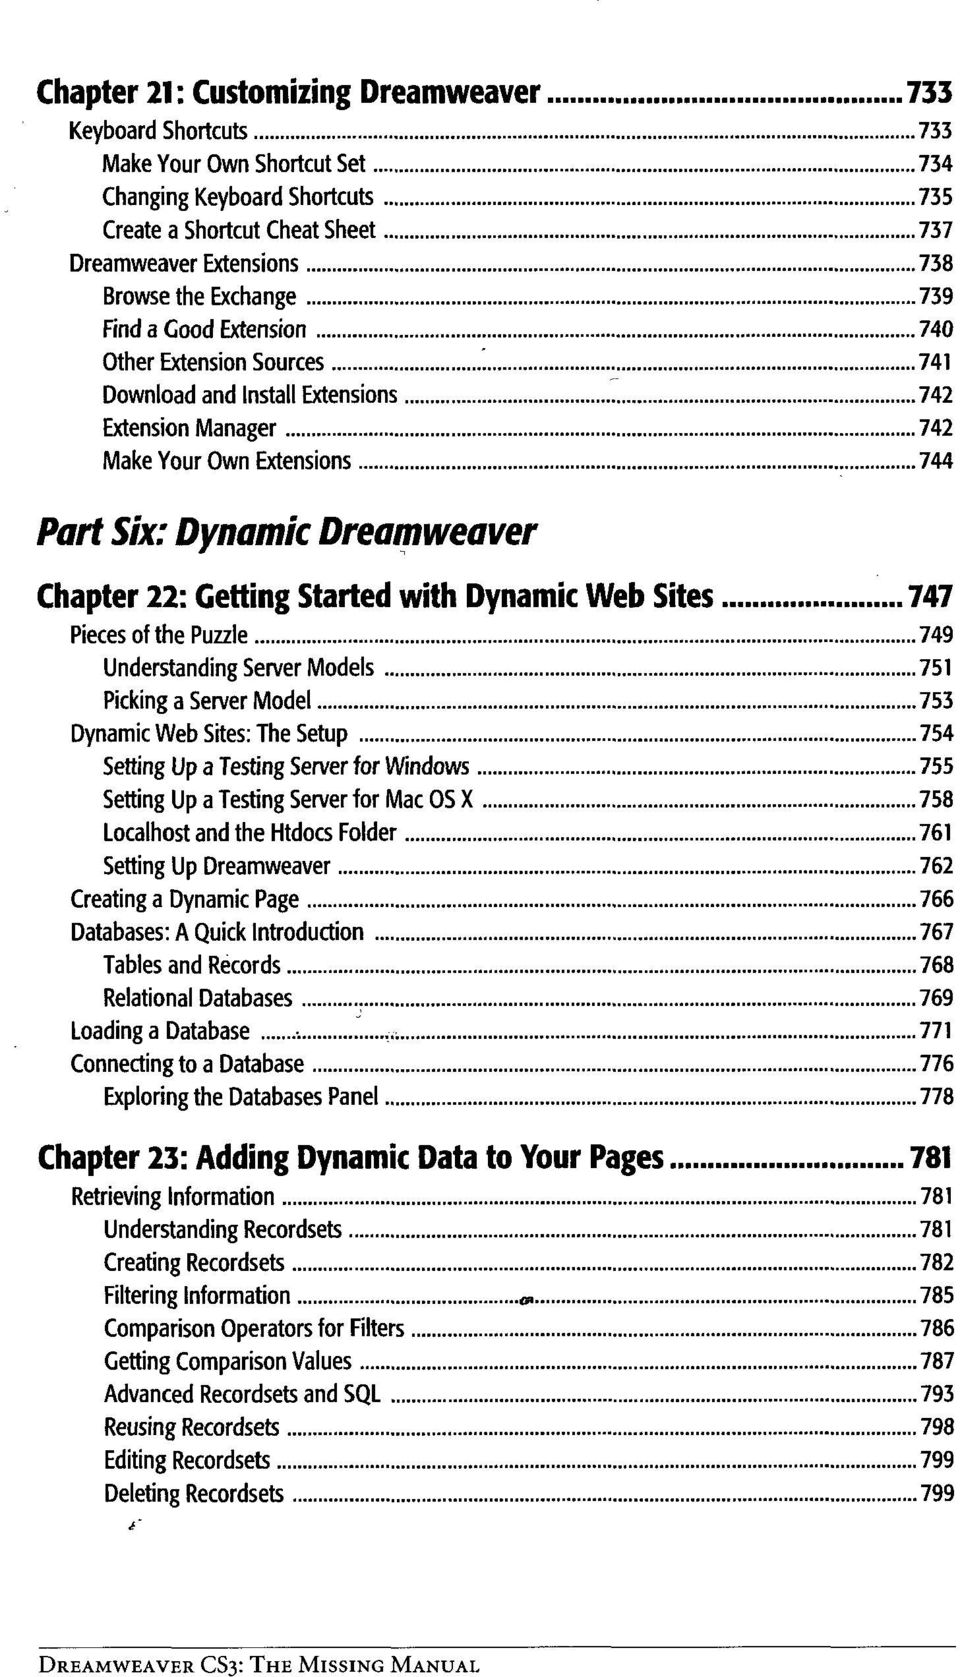 Getting Started with Dynamic Web Sites 747 Pieces of the Puzzle 749 Understanding Server Models 751 Picking a Server Model 753 Dynamic Web Sites: The Setup 754 Setting Up a Testing Server for Windows